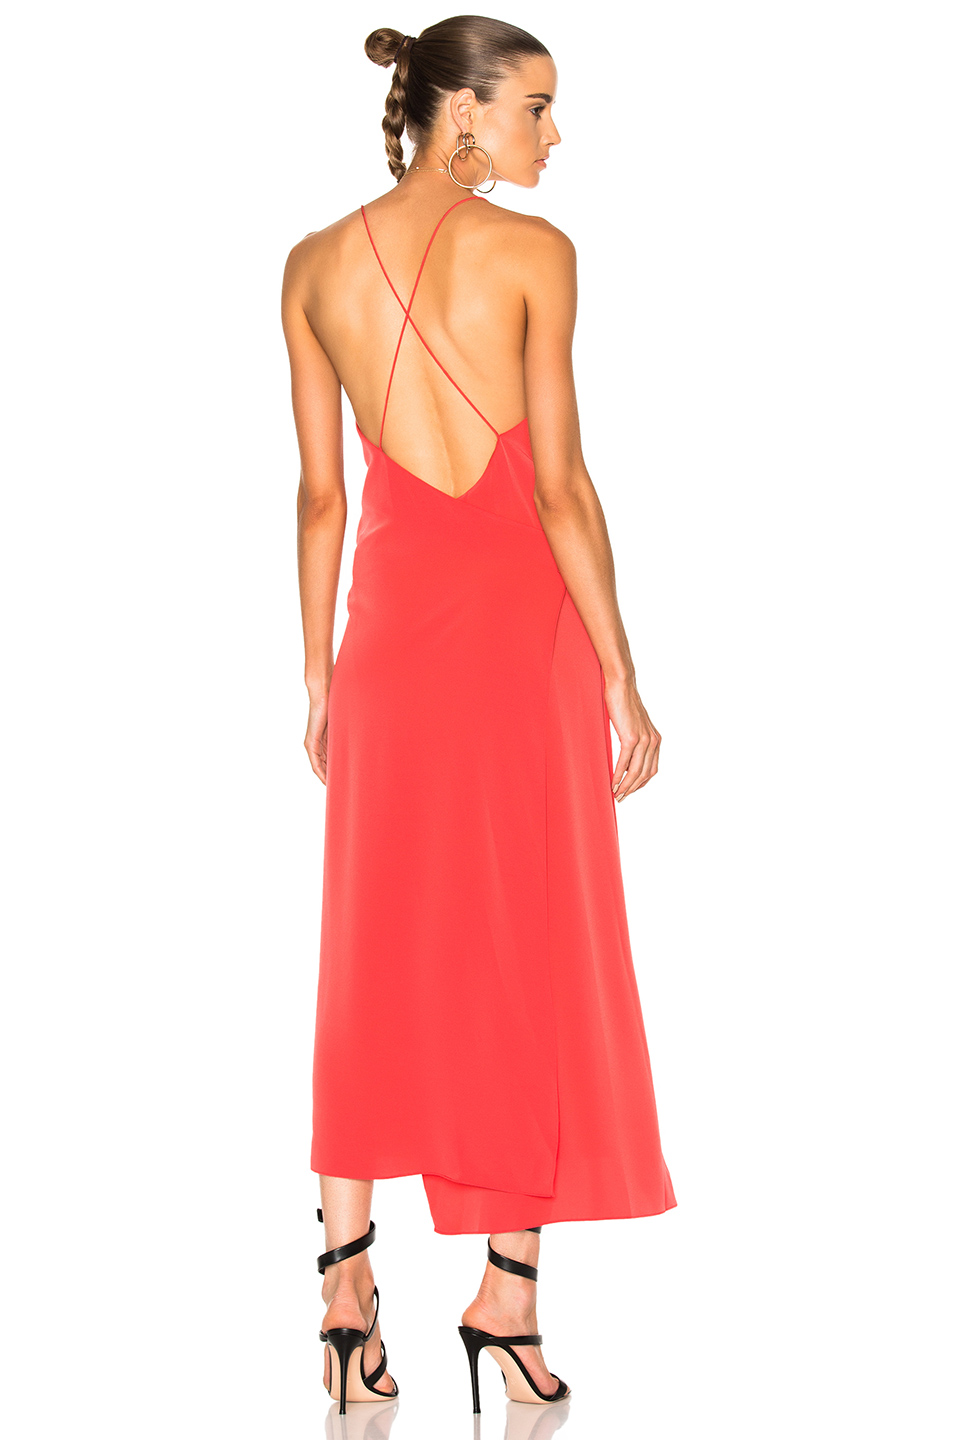 Alexis Analiai Dress in Pink,Red